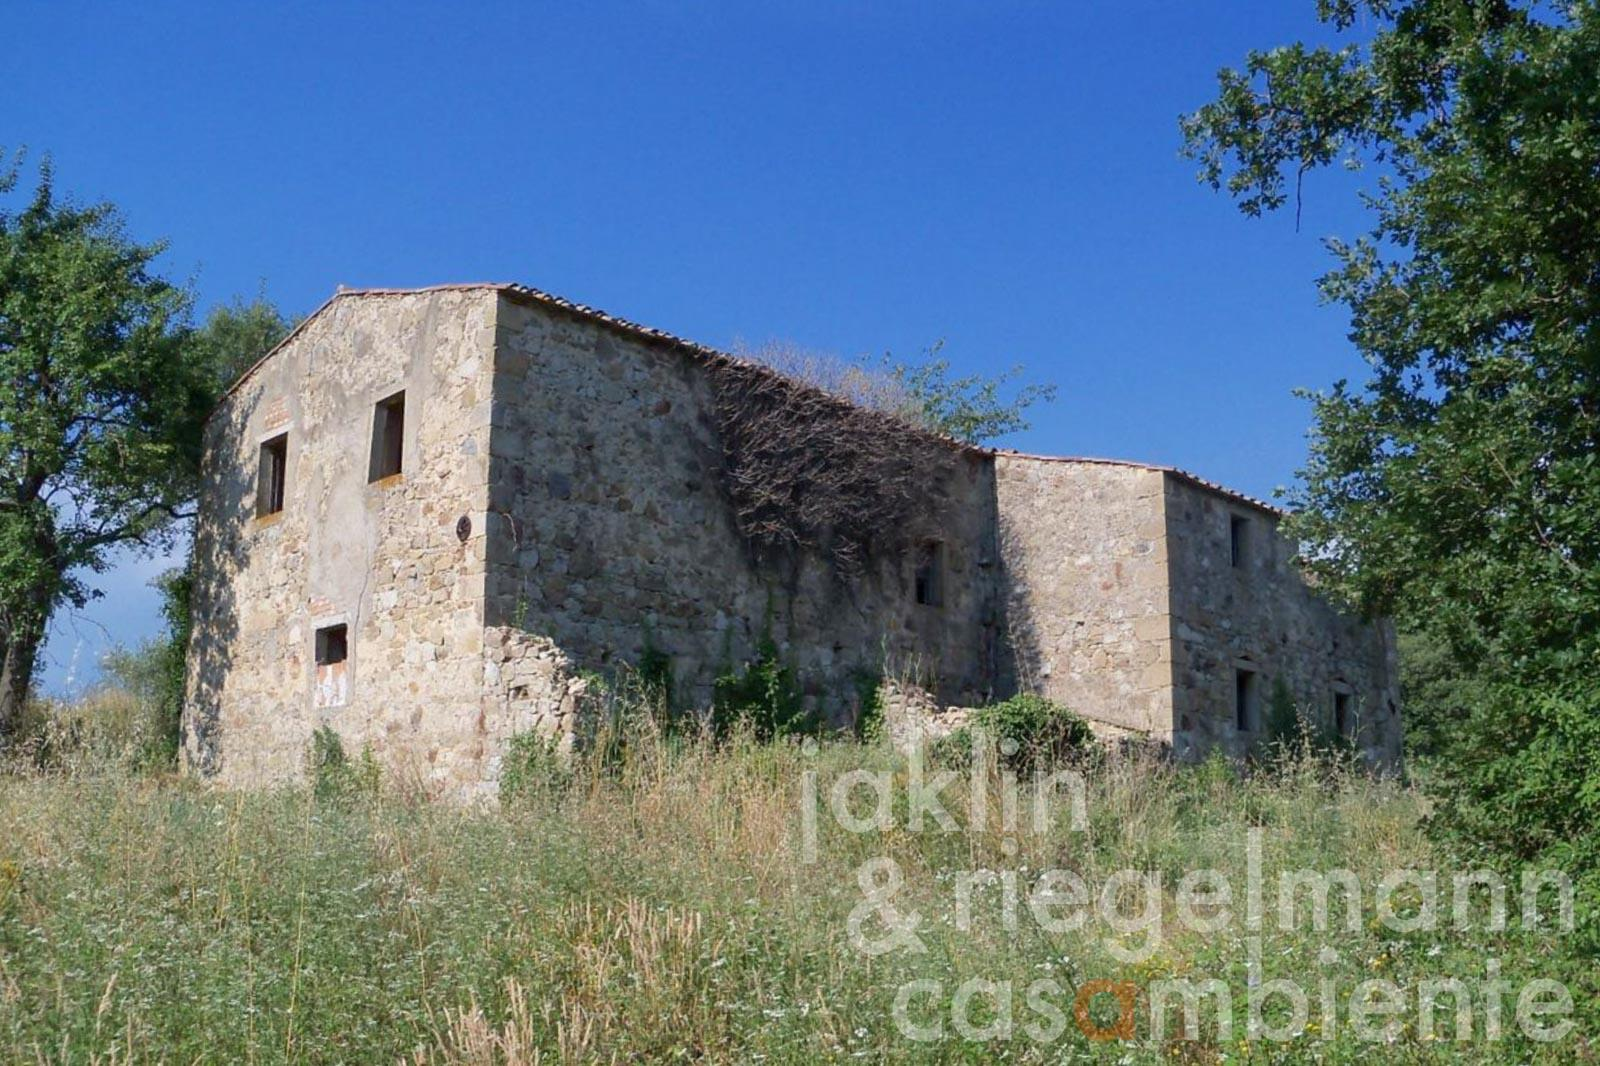 The Tuscan farmhouse to restore for sale with sea view and 34 hectares of land